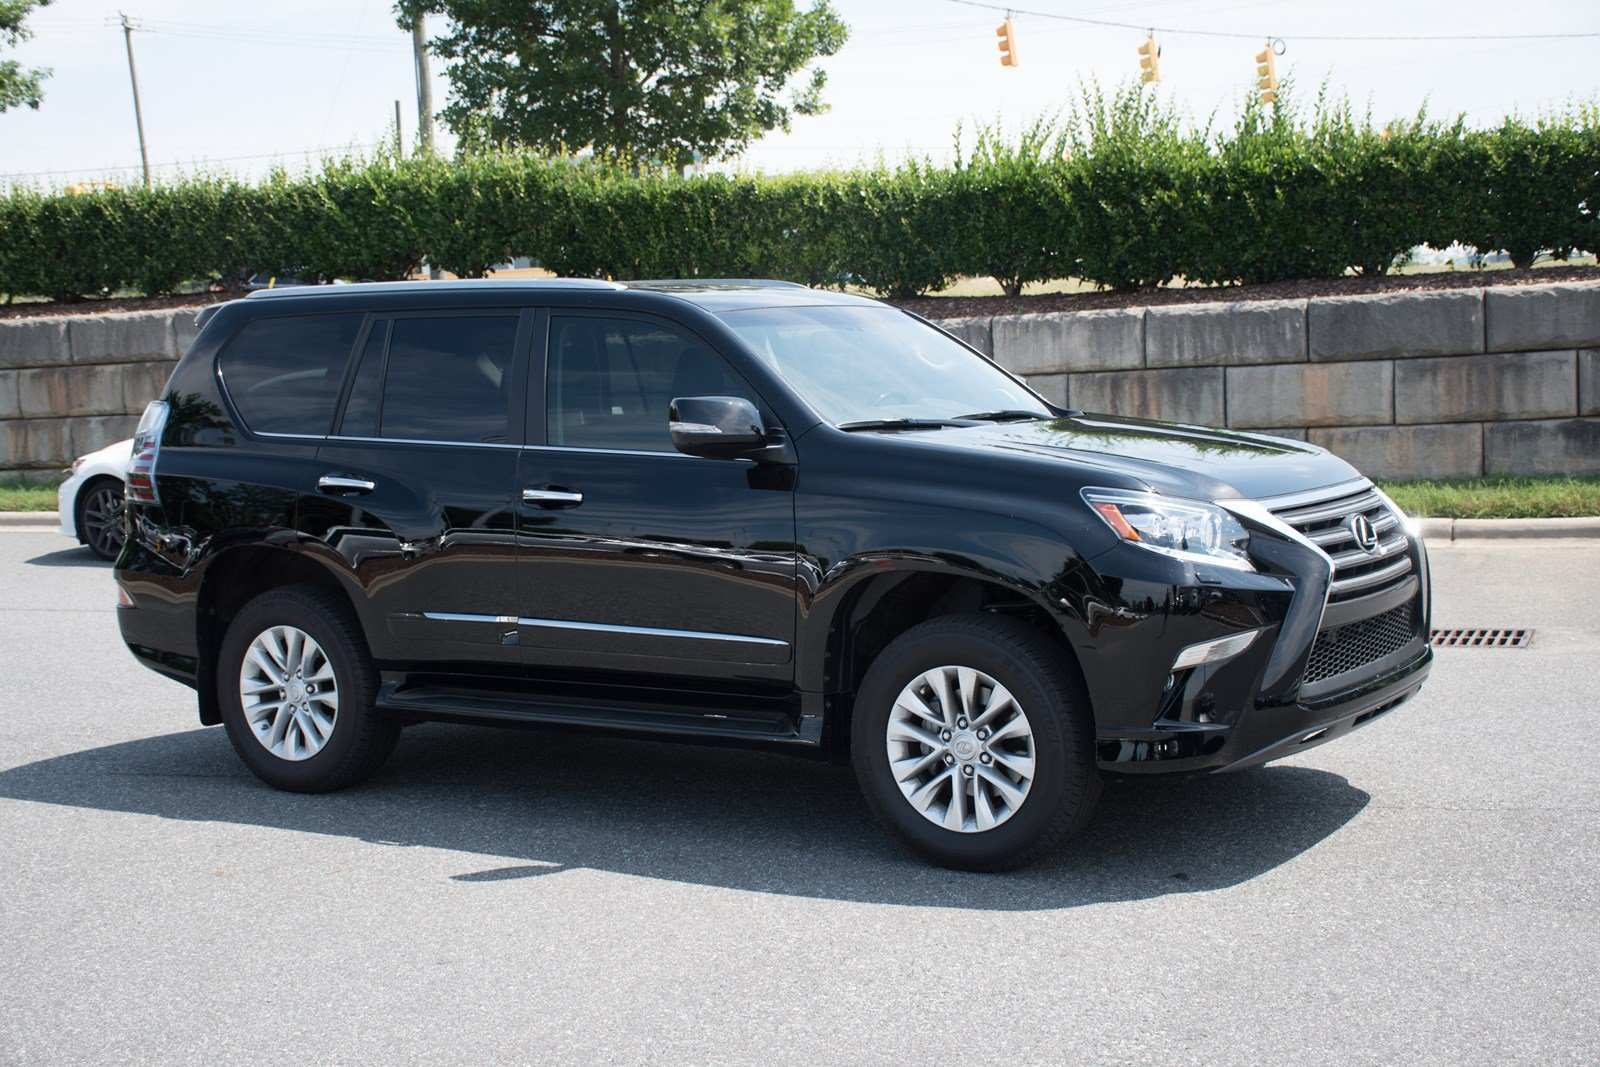 38 All New 2019 Lexus GX 460 Prices